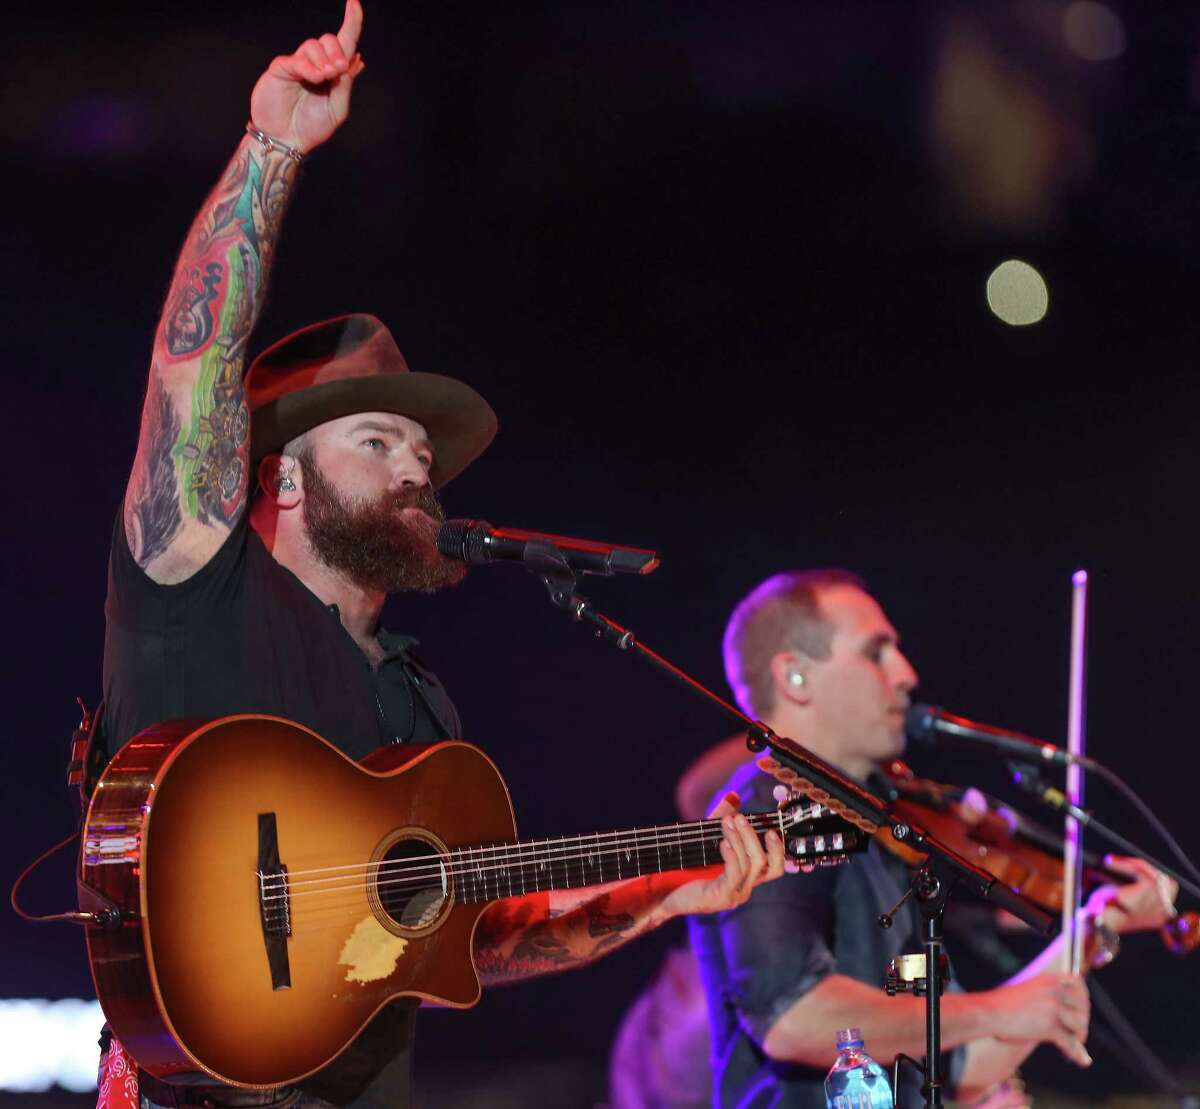 Zac Brown of the Zac Brown Band performs at Rodeo Houston Monday, March 12, 2018, in Houston.